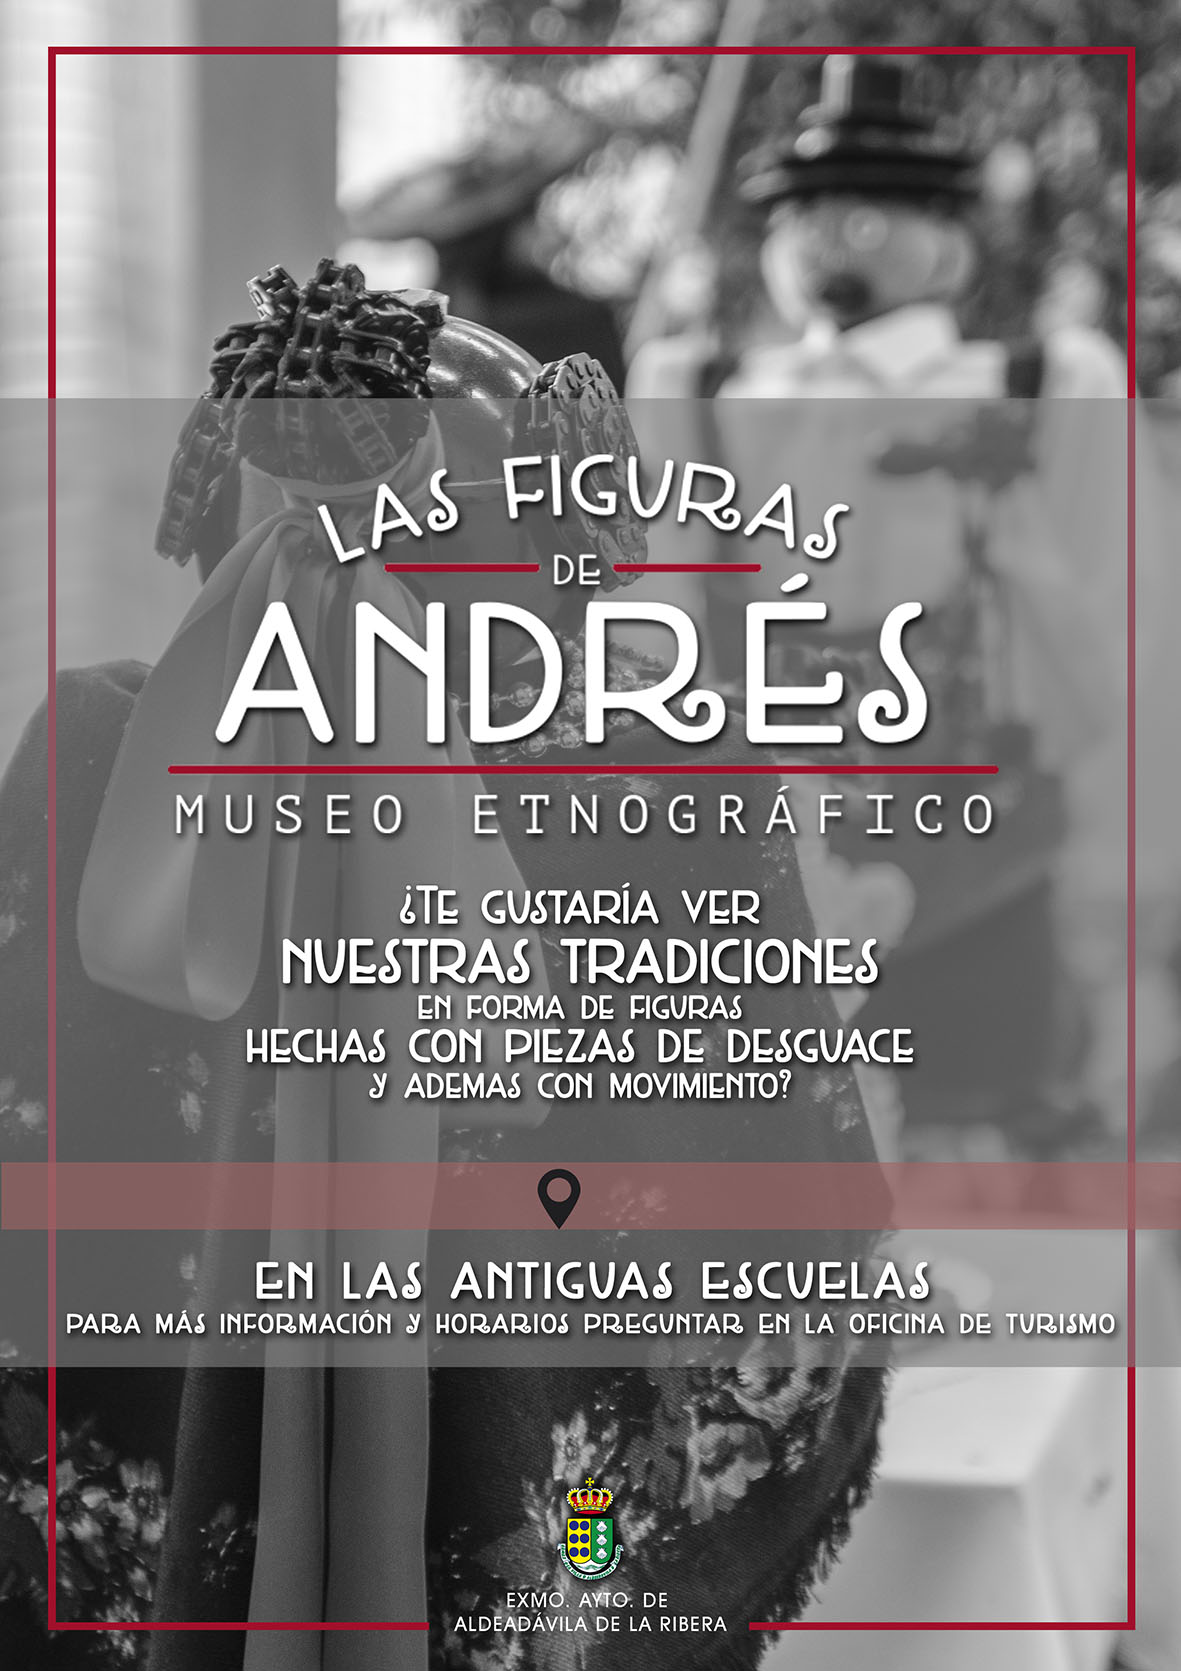 Figuras Andres web